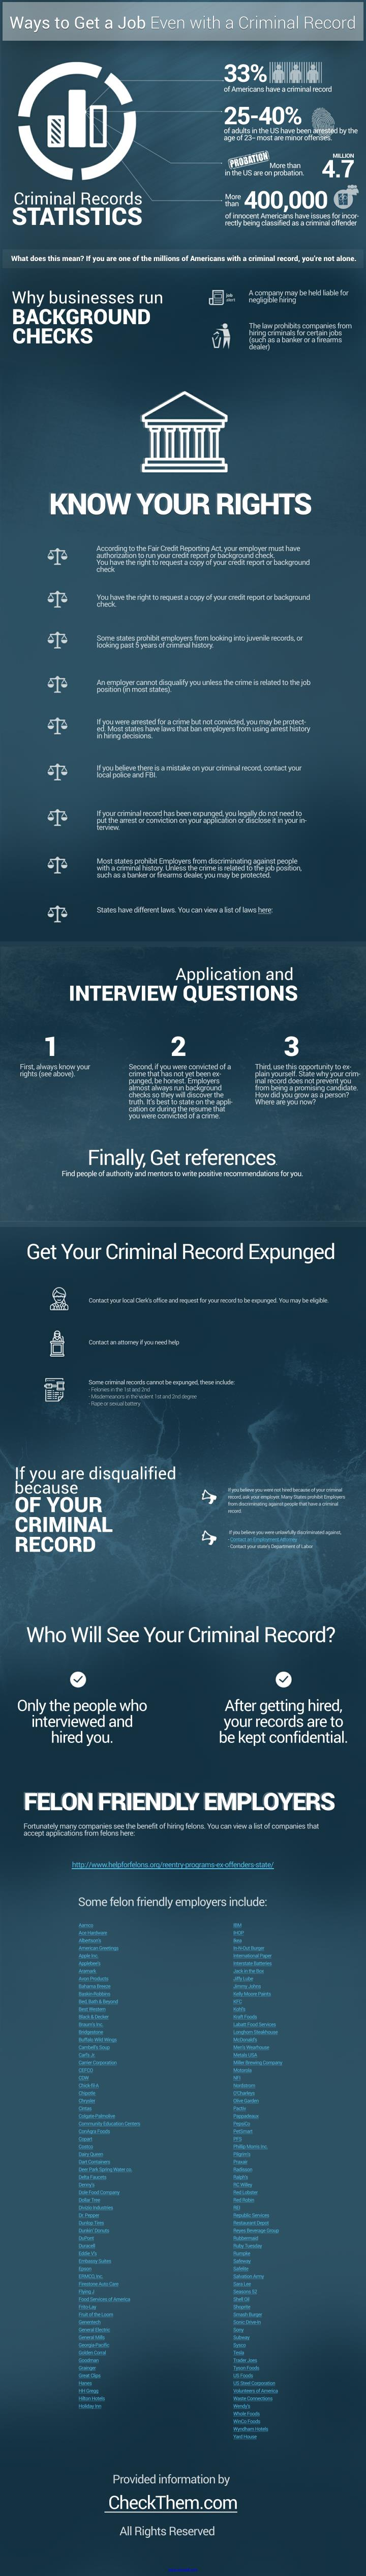 how to get a job with a criminal record australia